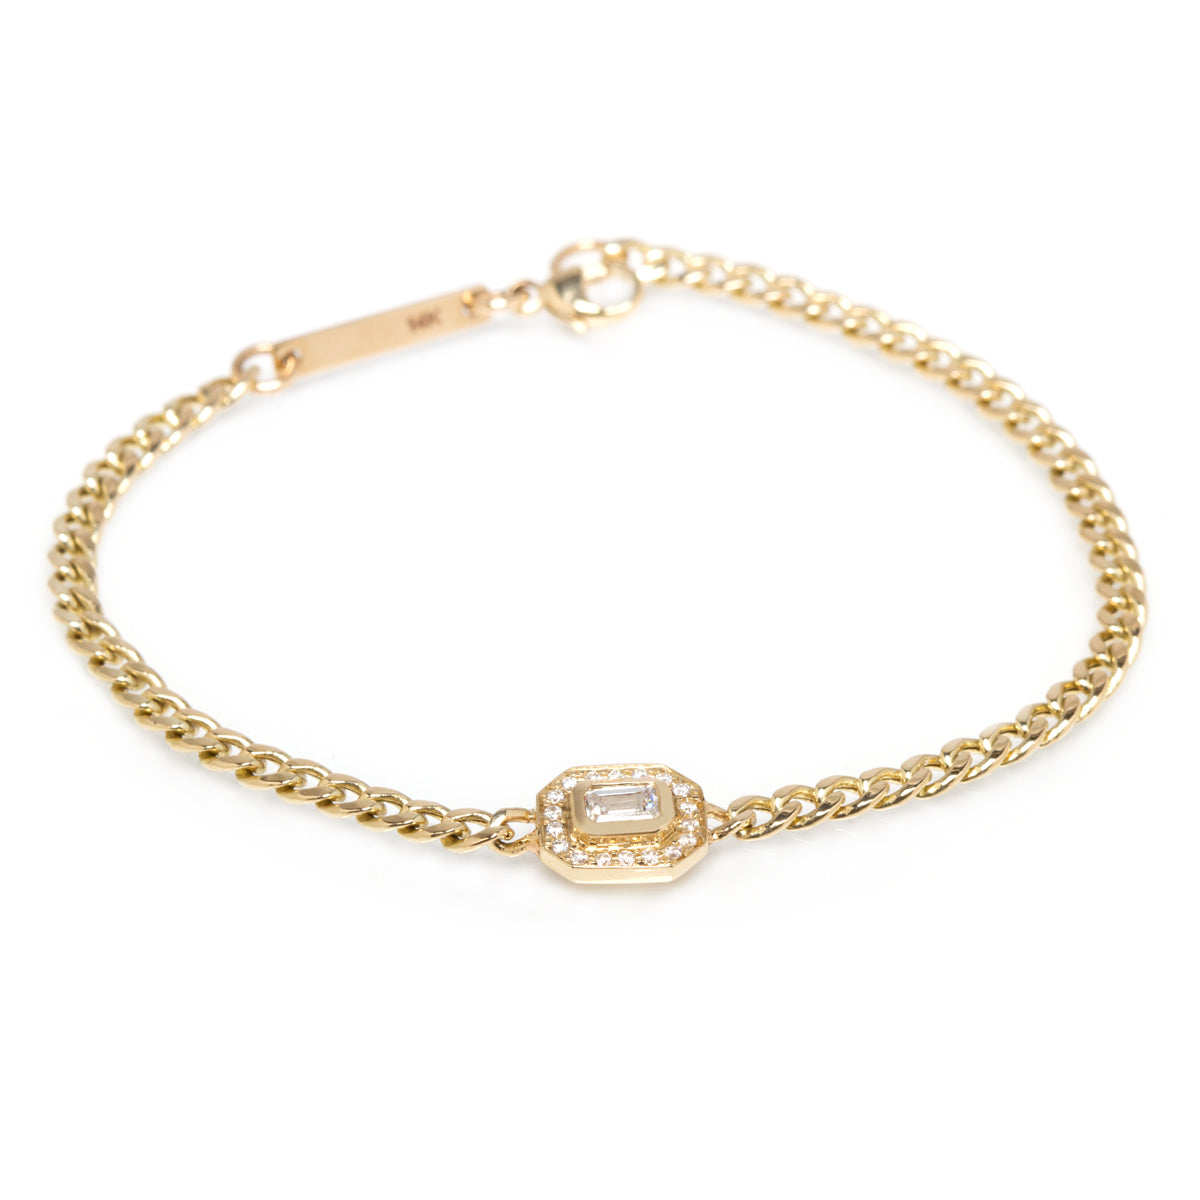 14k emerald cut diamond halo curb chain bracelet